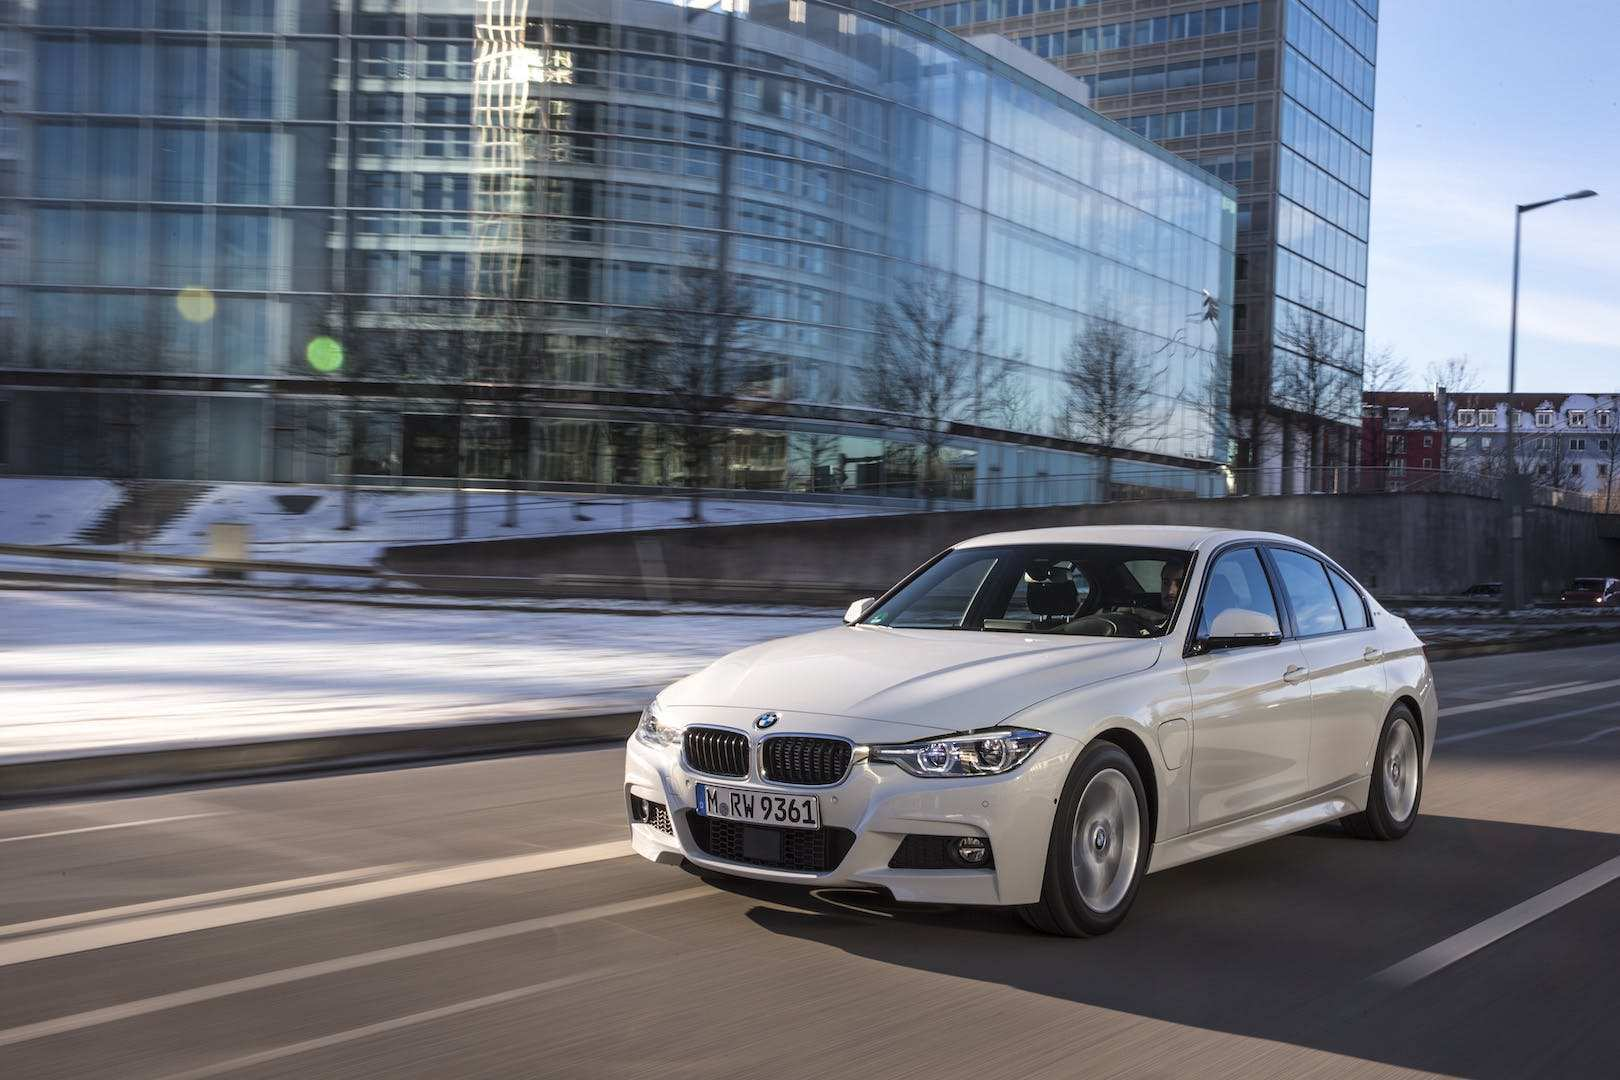 68 All New 2019 BMW 3 Series Edrive Phev Release Date And Concept